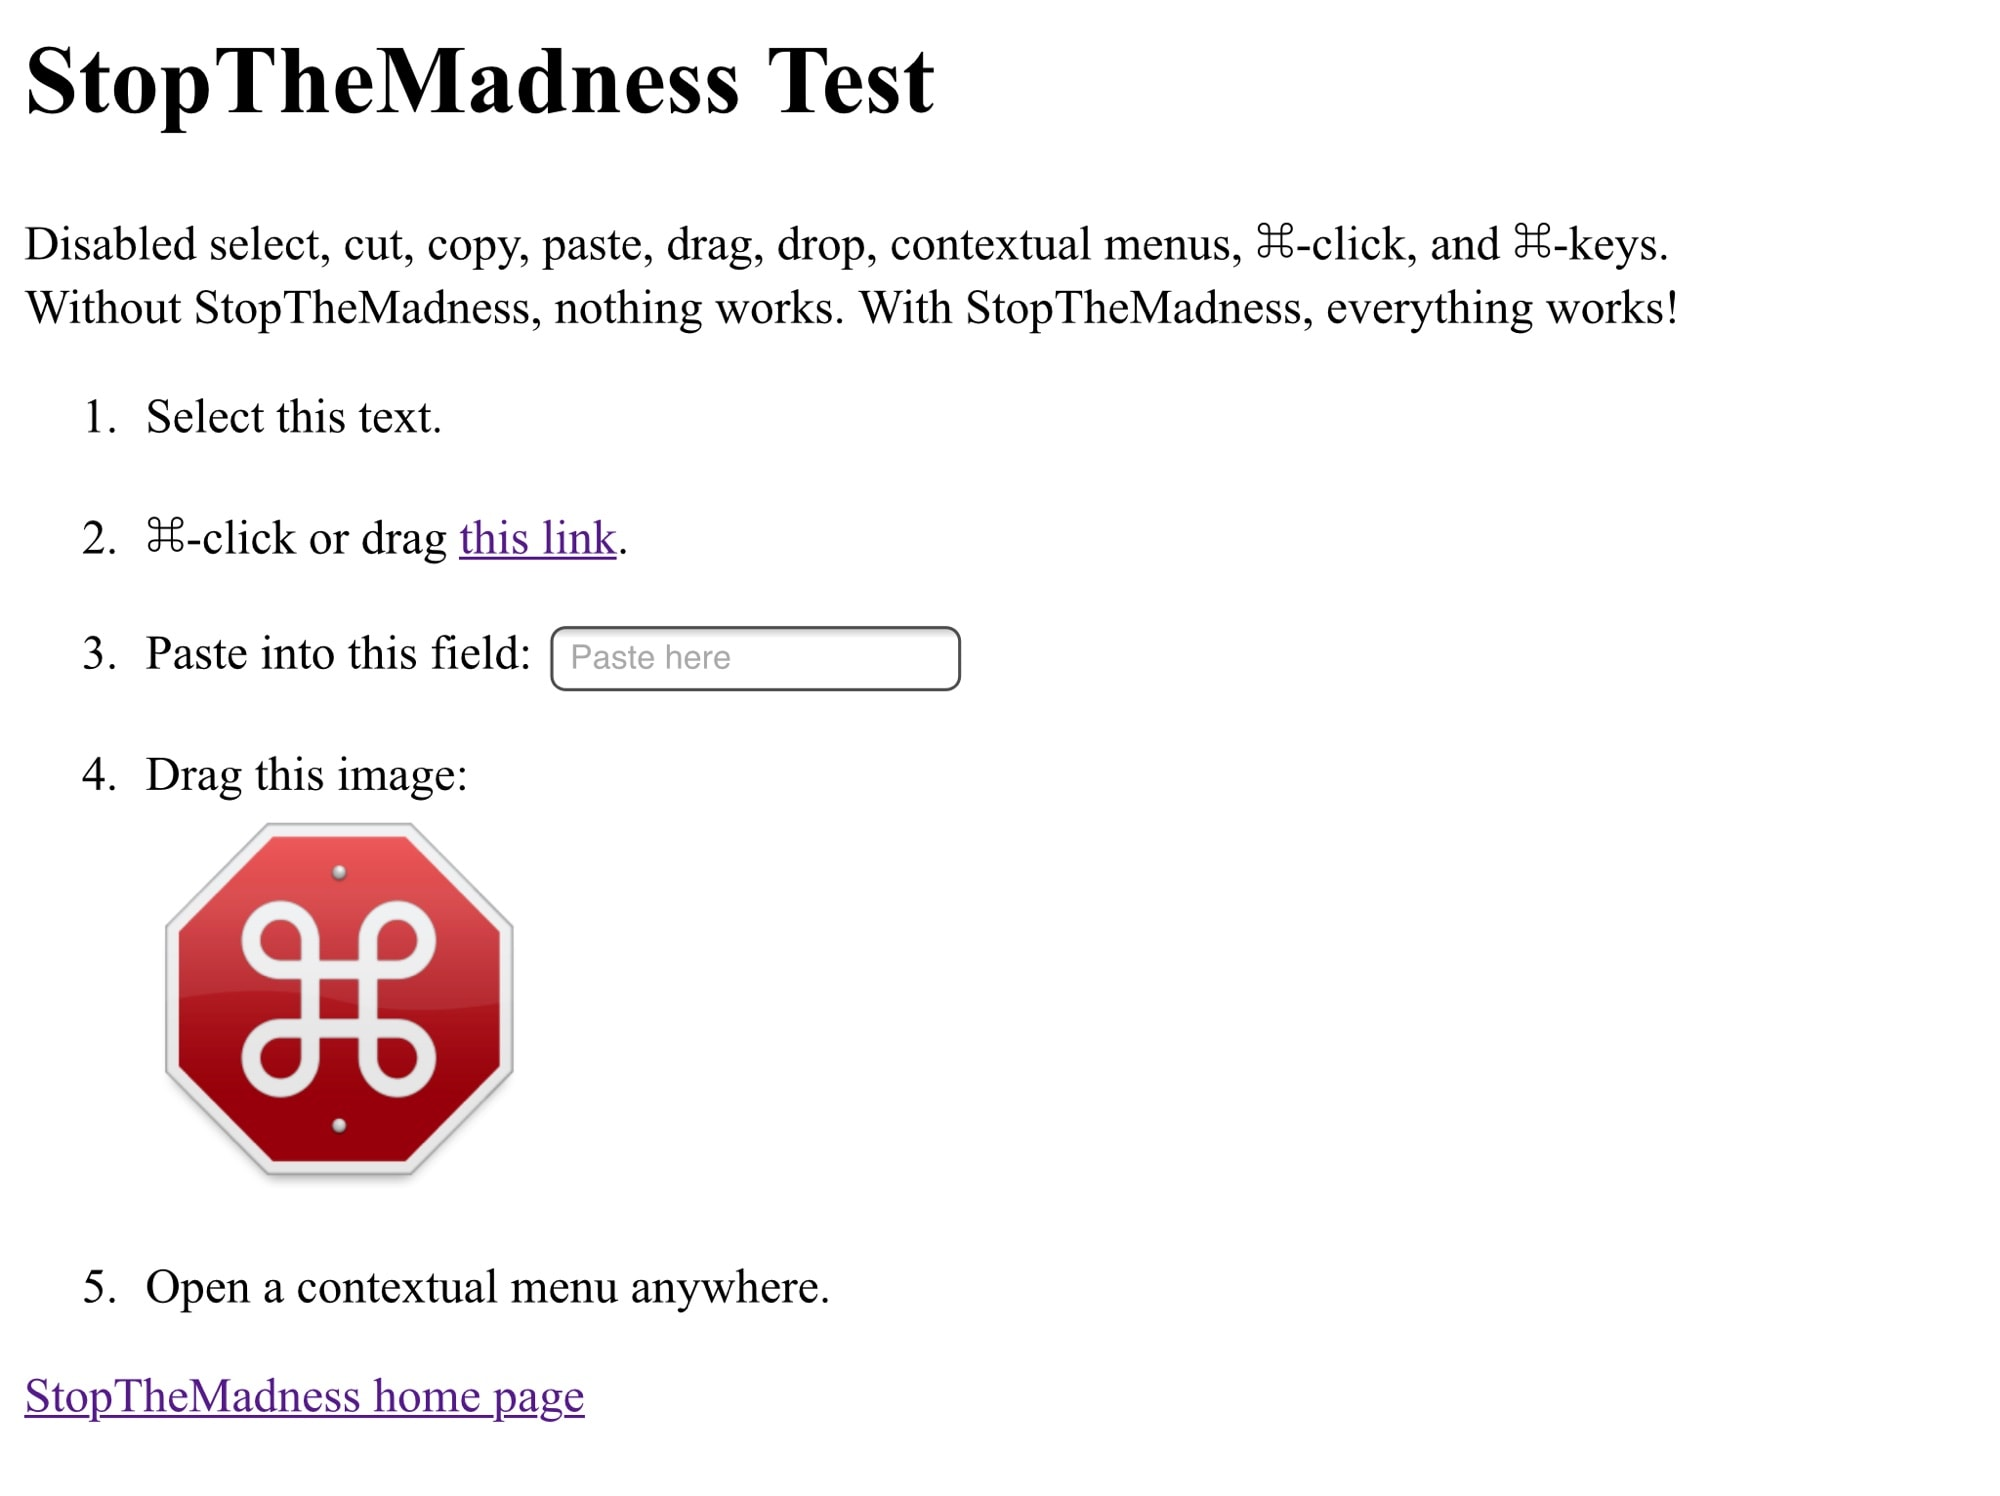 The StopTheMadness test page is a real eye-opener.